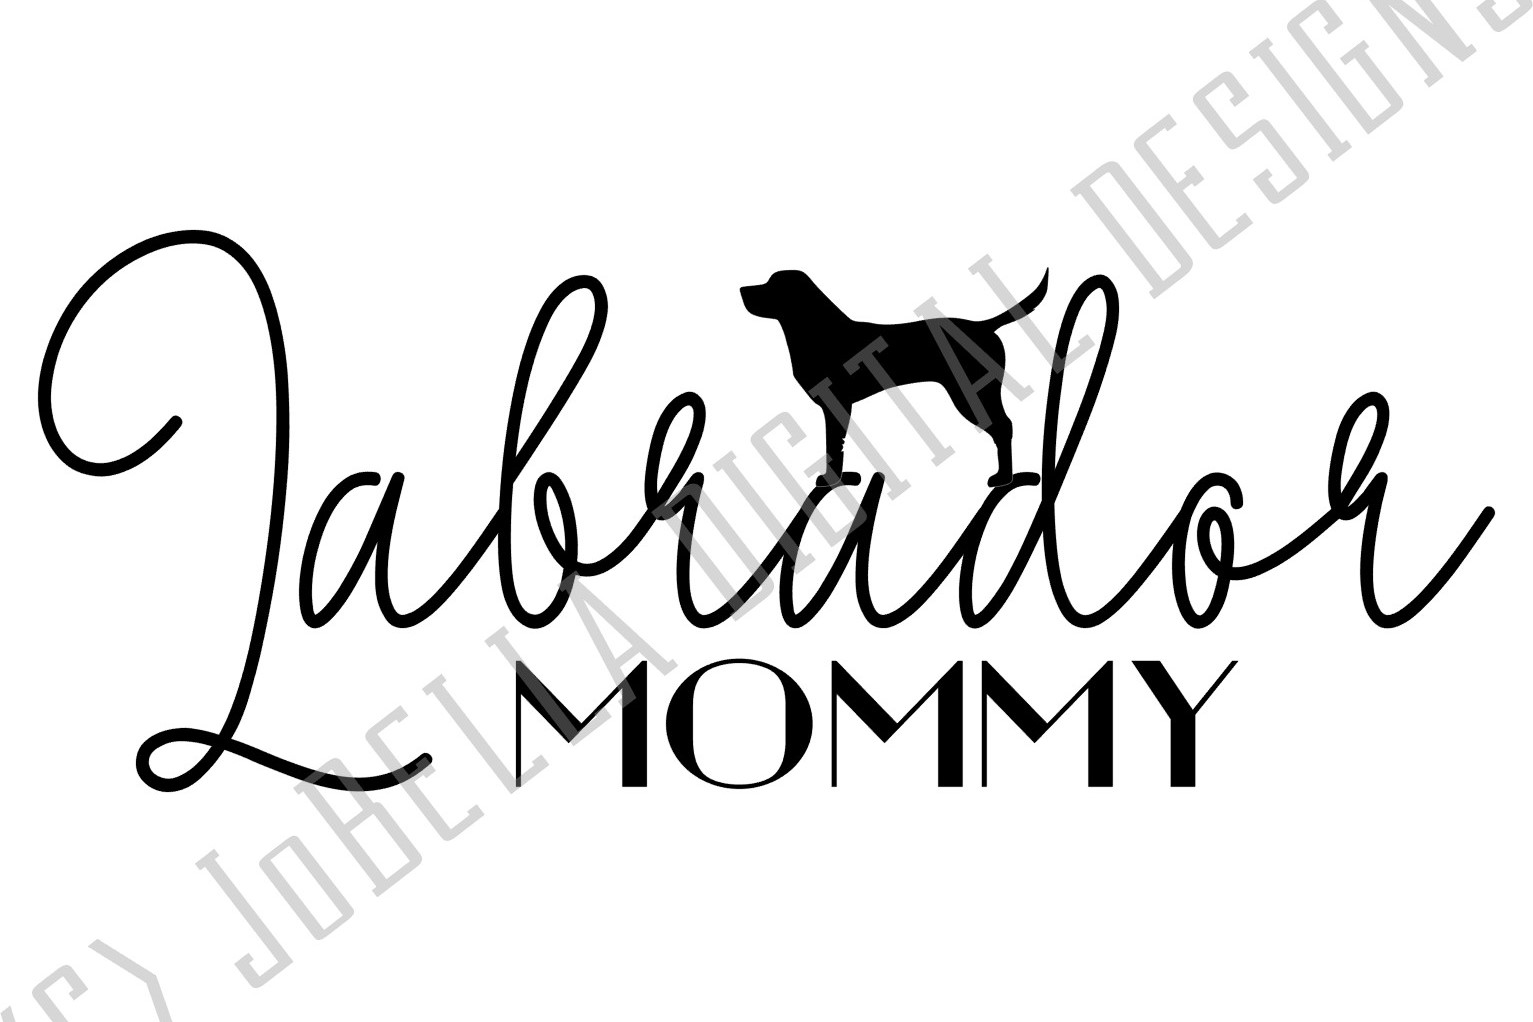 Labrador Mommy SVG and Printable Dog Lover Design example image 3